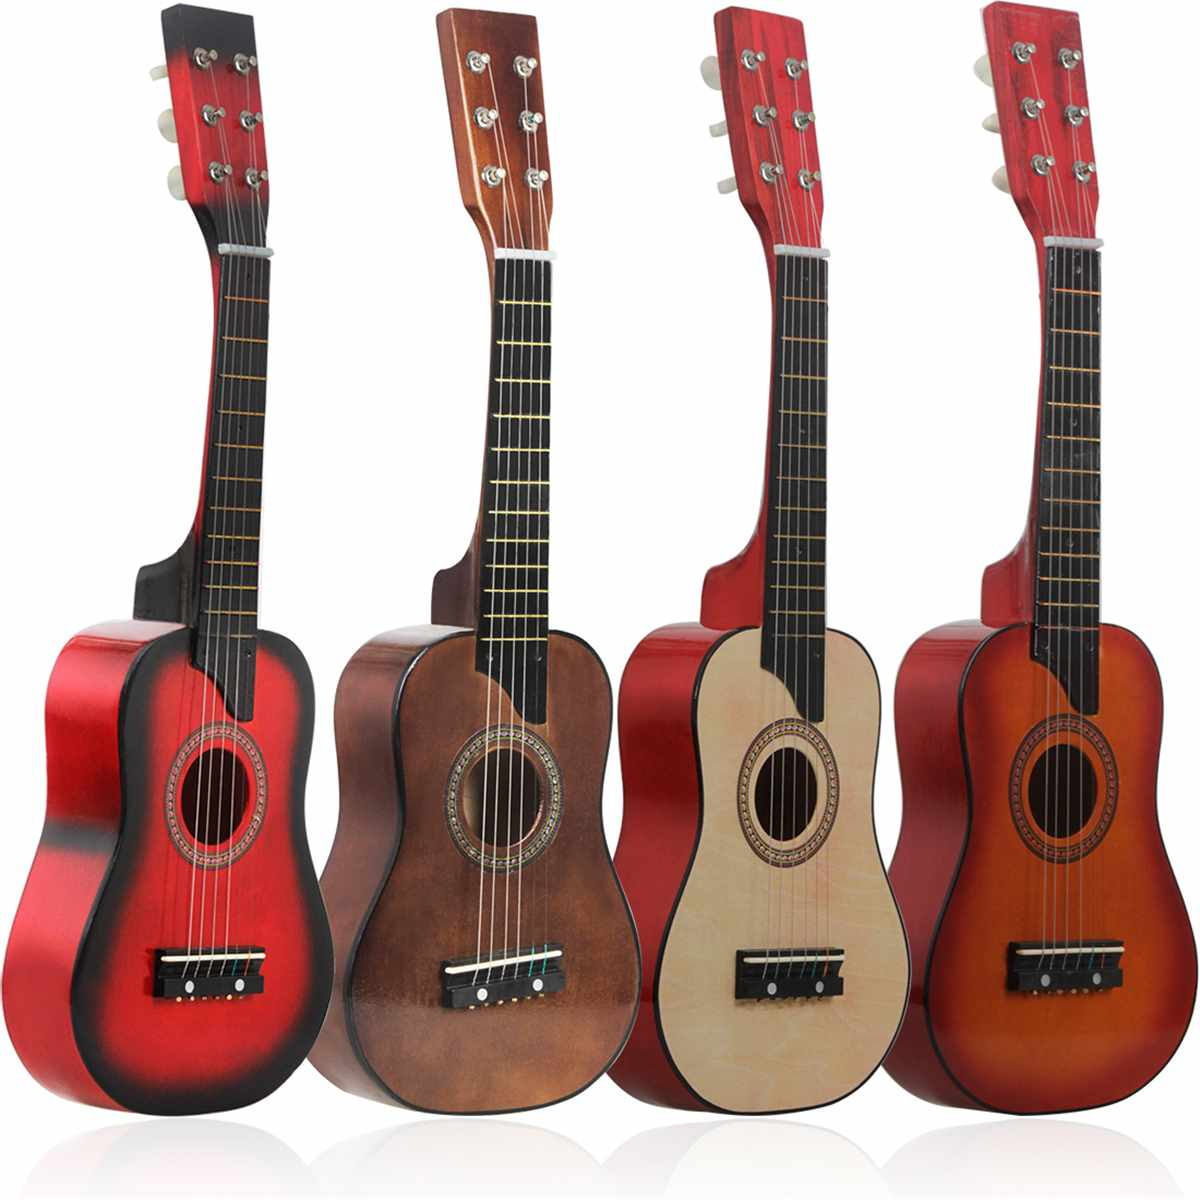 25 inch Mini Wooden Guitar Acoustic 6 String with Carrying Bag Musical Instrument Toy Children Educational Musical Gift